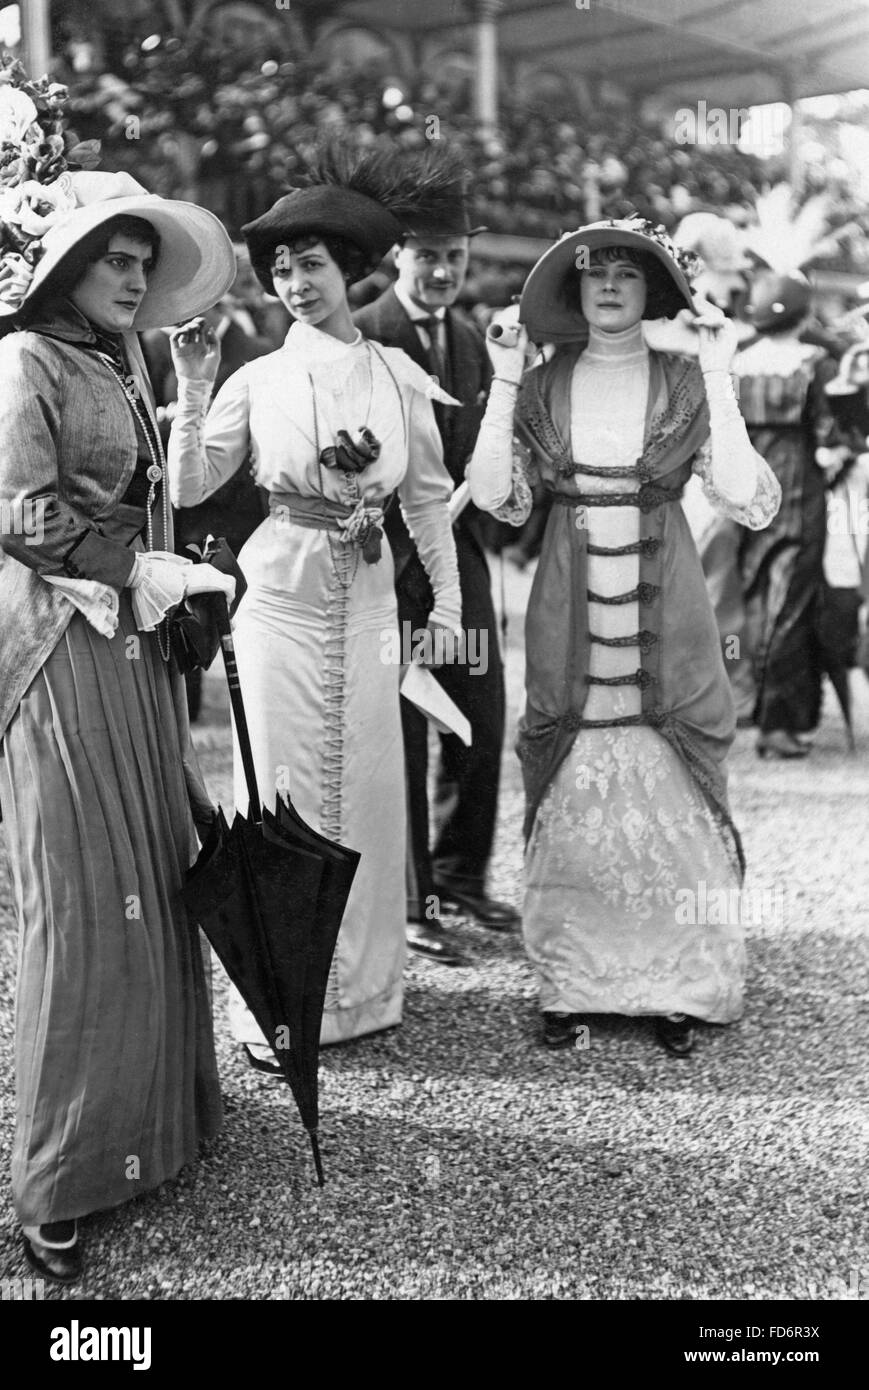 Women's fashion, 1912